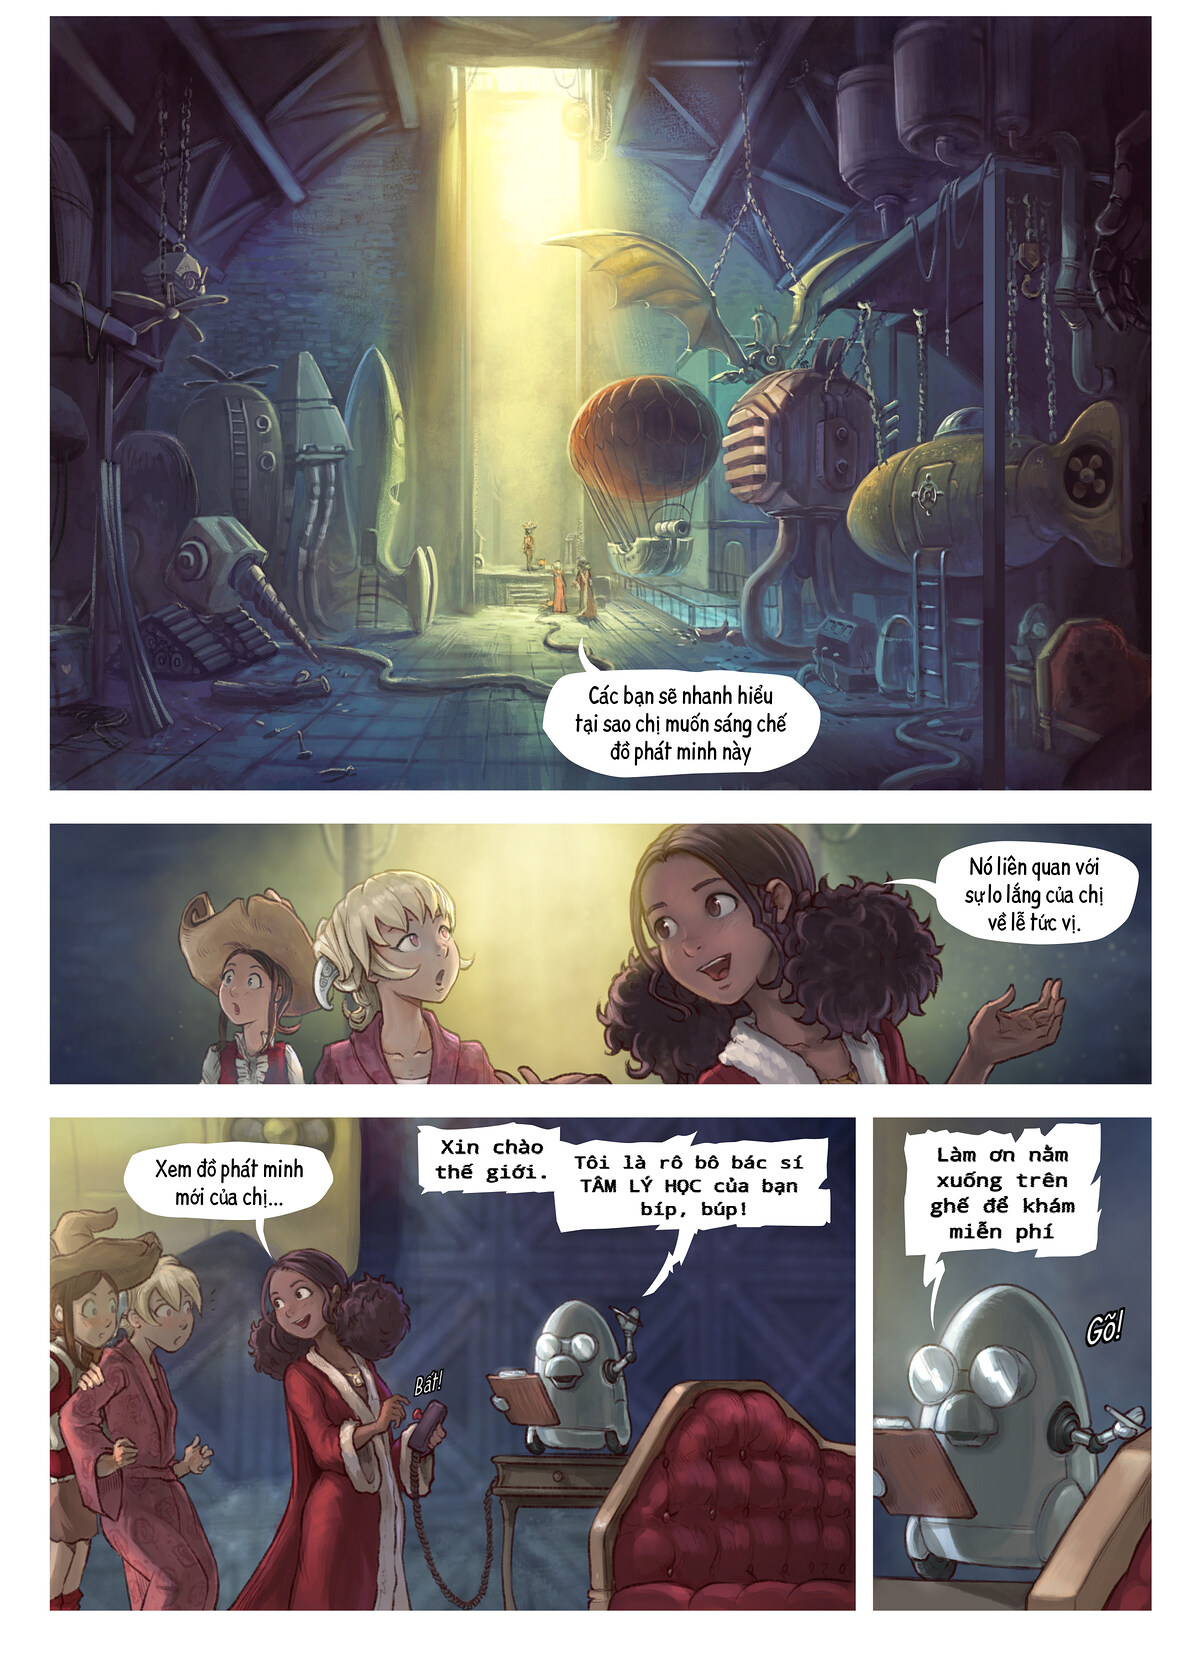 A webcomic page of Pepper&Carrot, Tập 27 [vi], trang 3